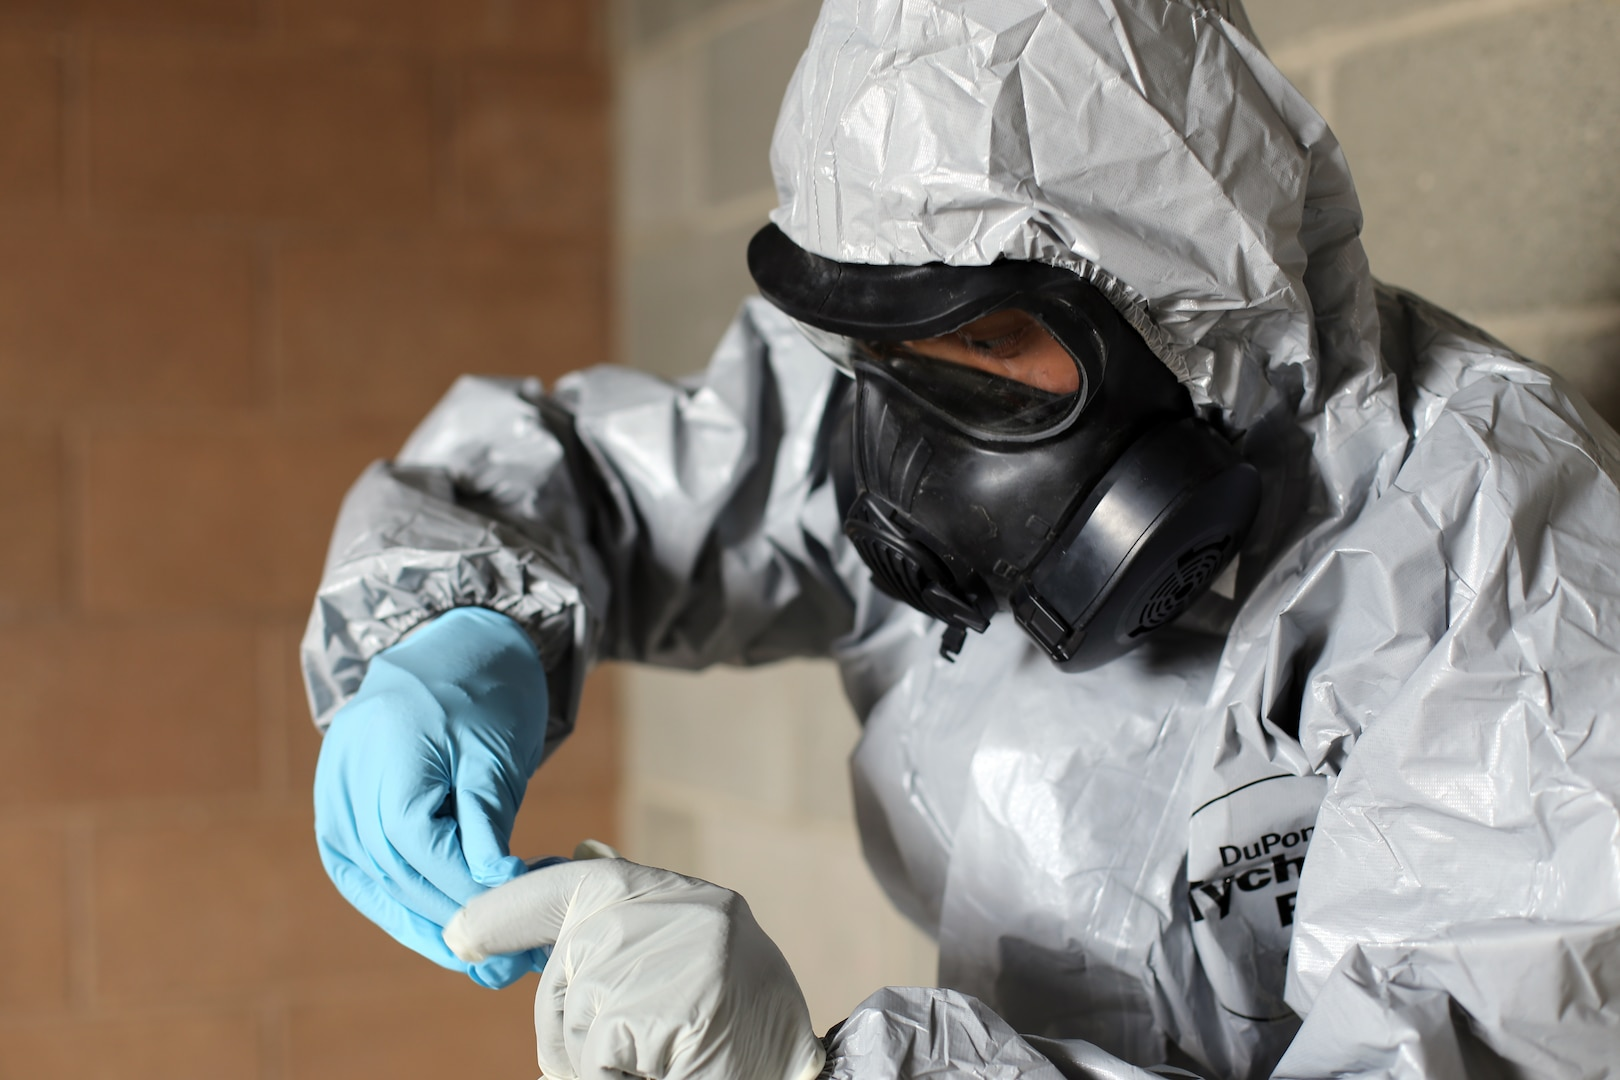 Members of the Washington National Guard's 792nd Chemical Company conduct a chemical sampling exercise in a biological hazard environment at the HAMMER Training Facility in Richland, Wash., June 15, 2021. The 792nd Chemical Company supports the Chemical, Biological, Radiological, Nuclear team under the Washington National Guard Region X Homeland Response Force.